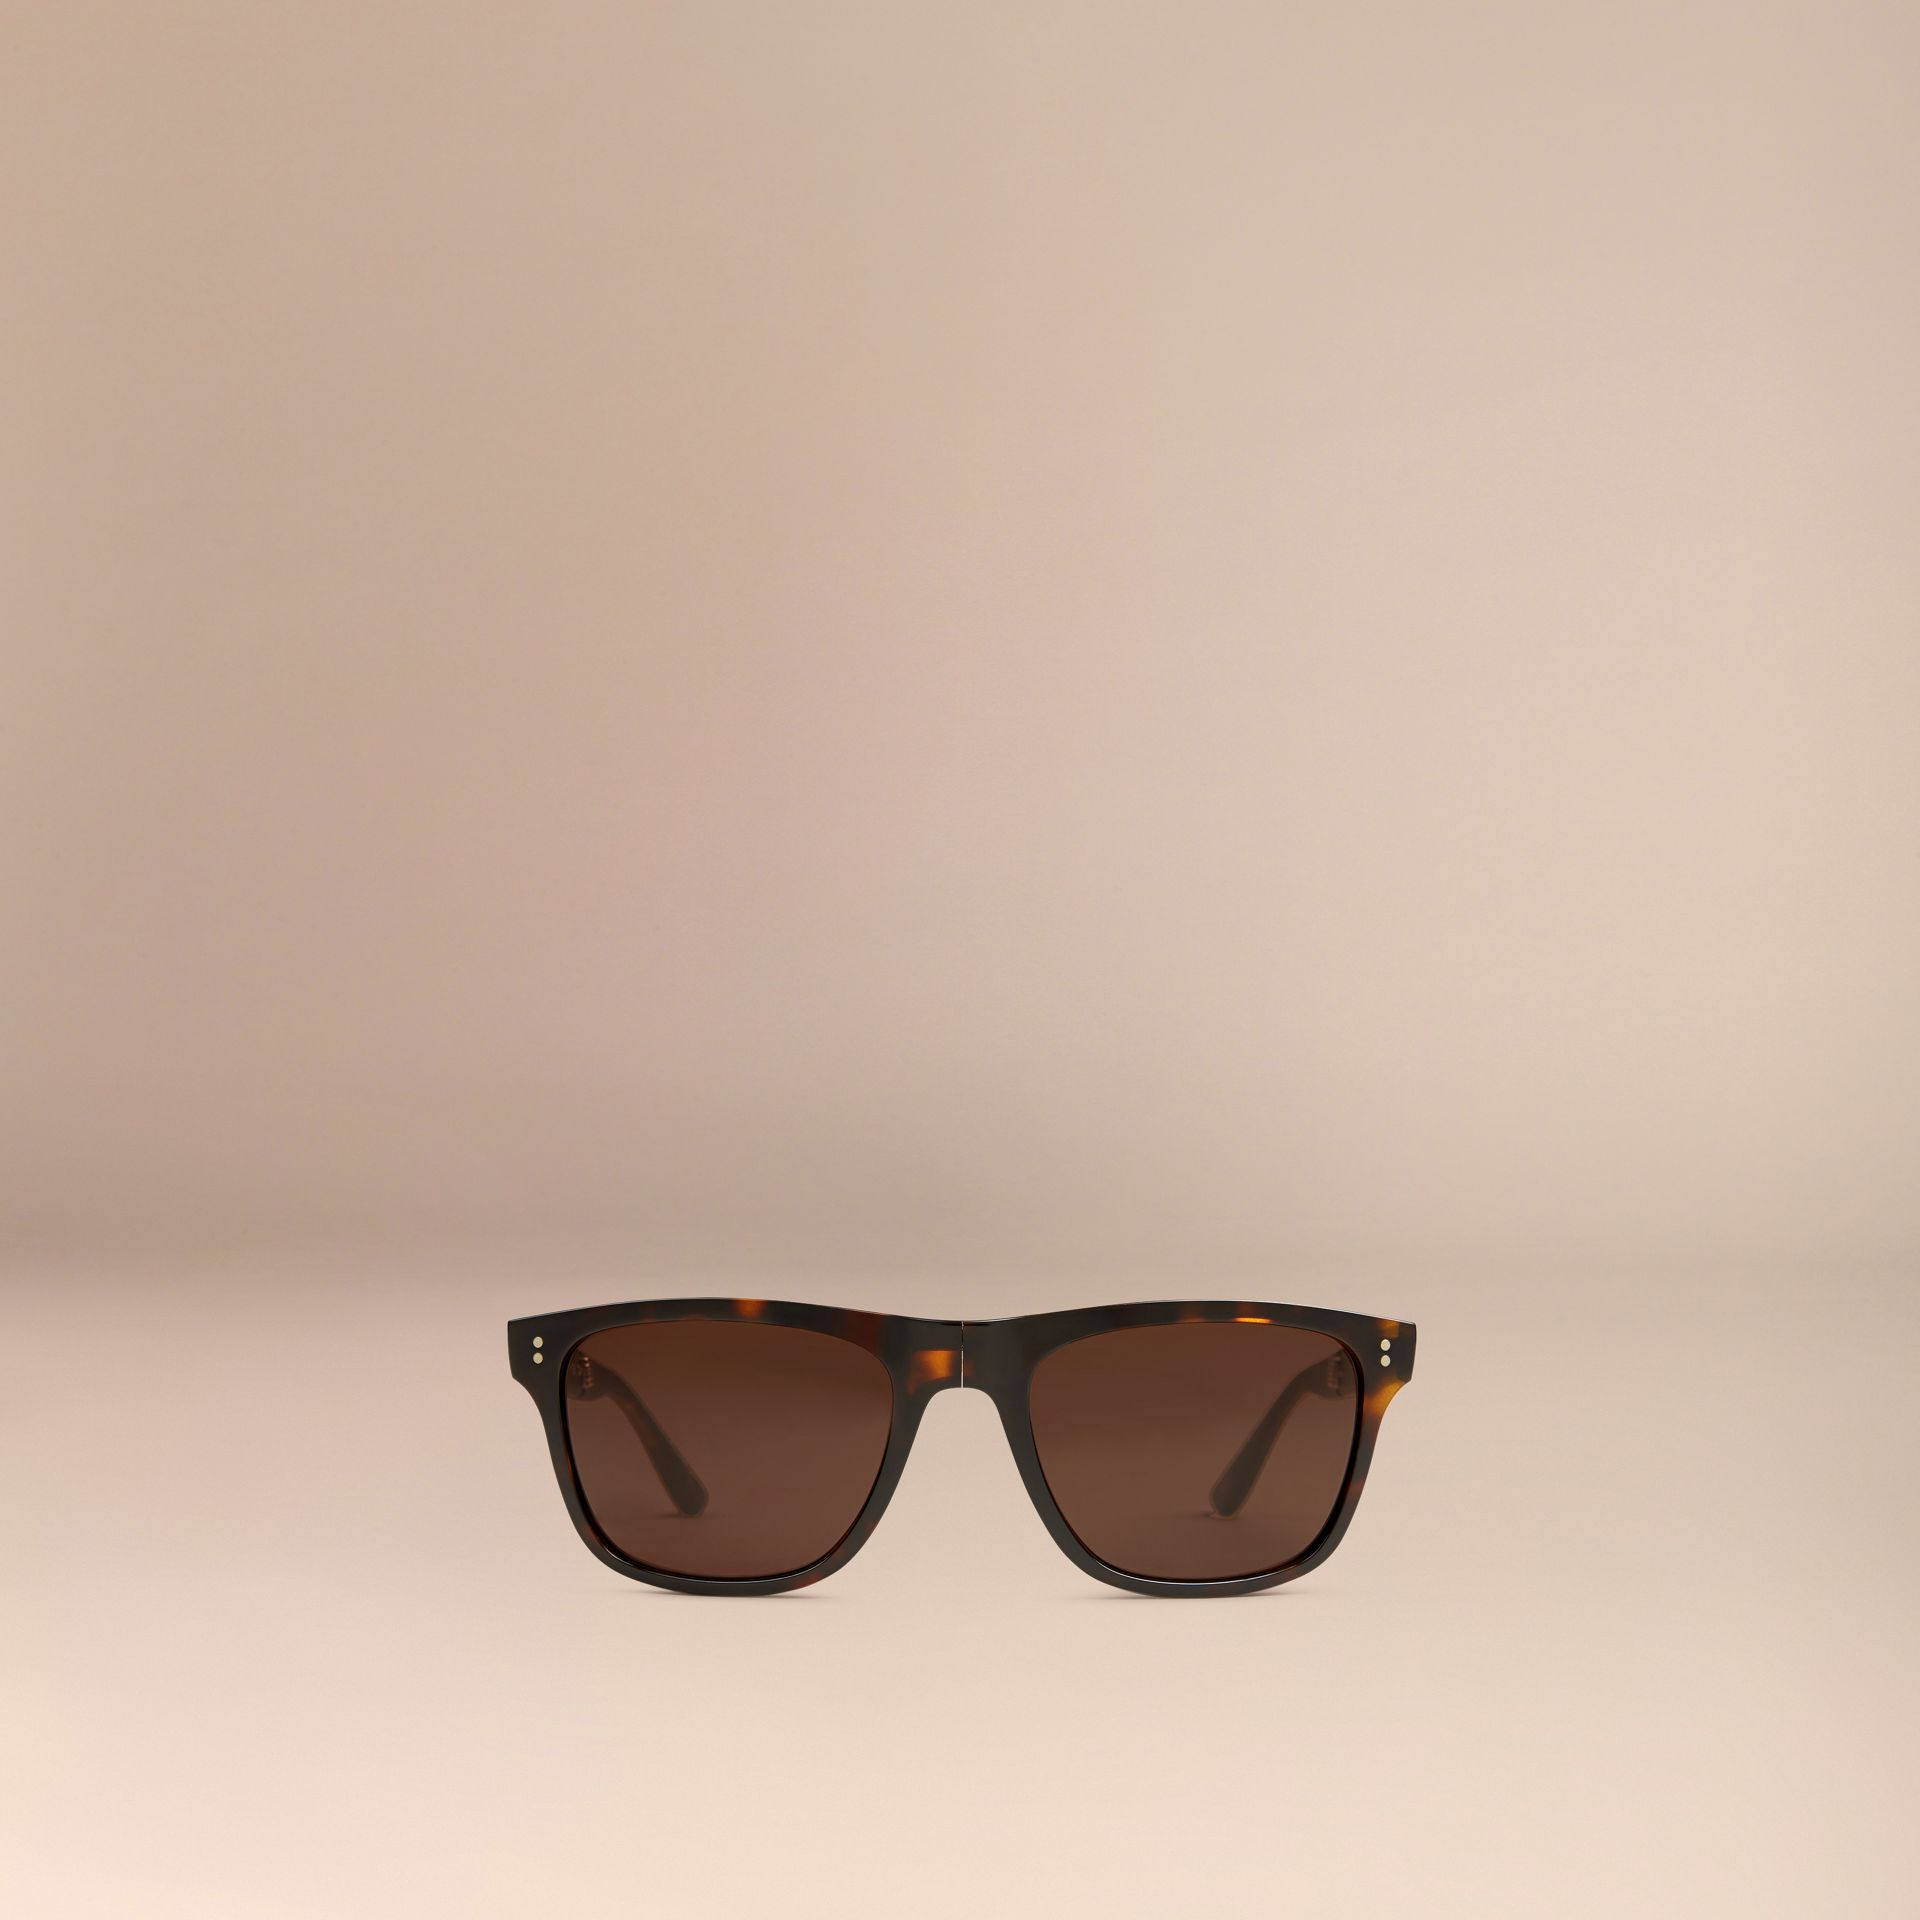 Folding Rectangular Frame Sunglasses in Dark Brown - Men | Burberry United Kingdom - gallery image 3